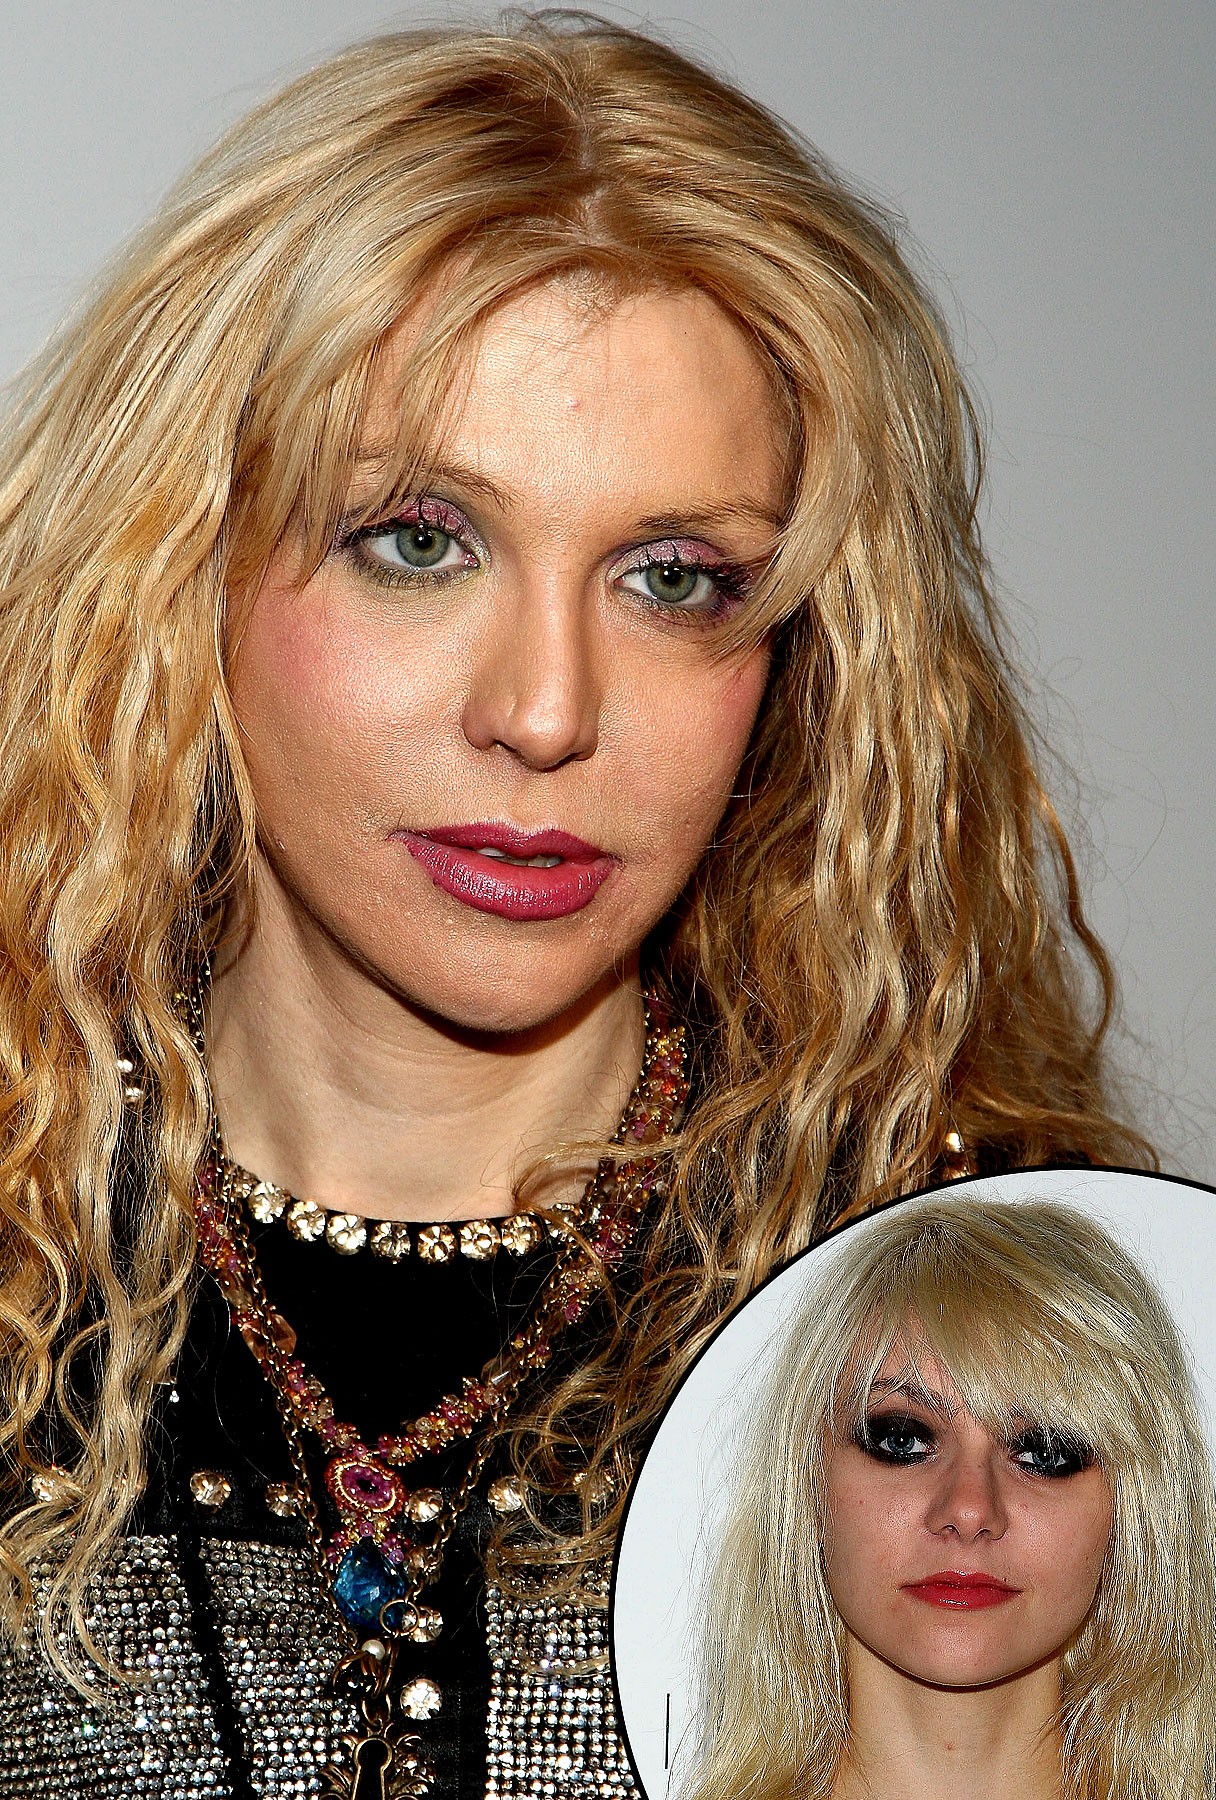 Courtney Love Takes on Taylor Momsen and the Veronicas